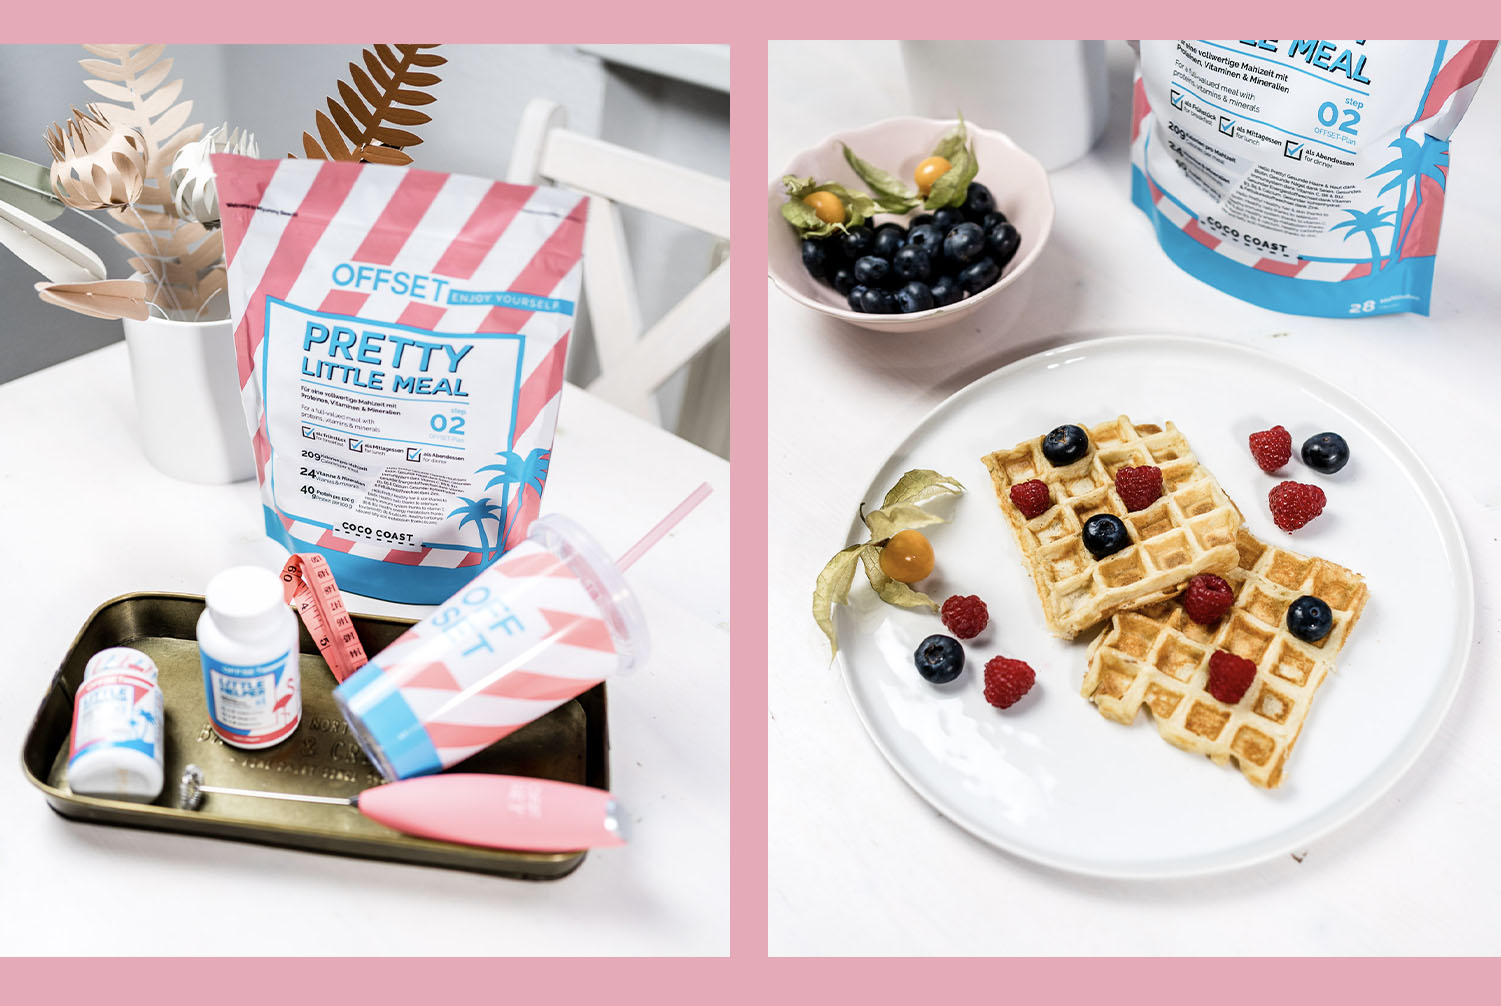 Pretty Little Meal von OFFSET Nutrition